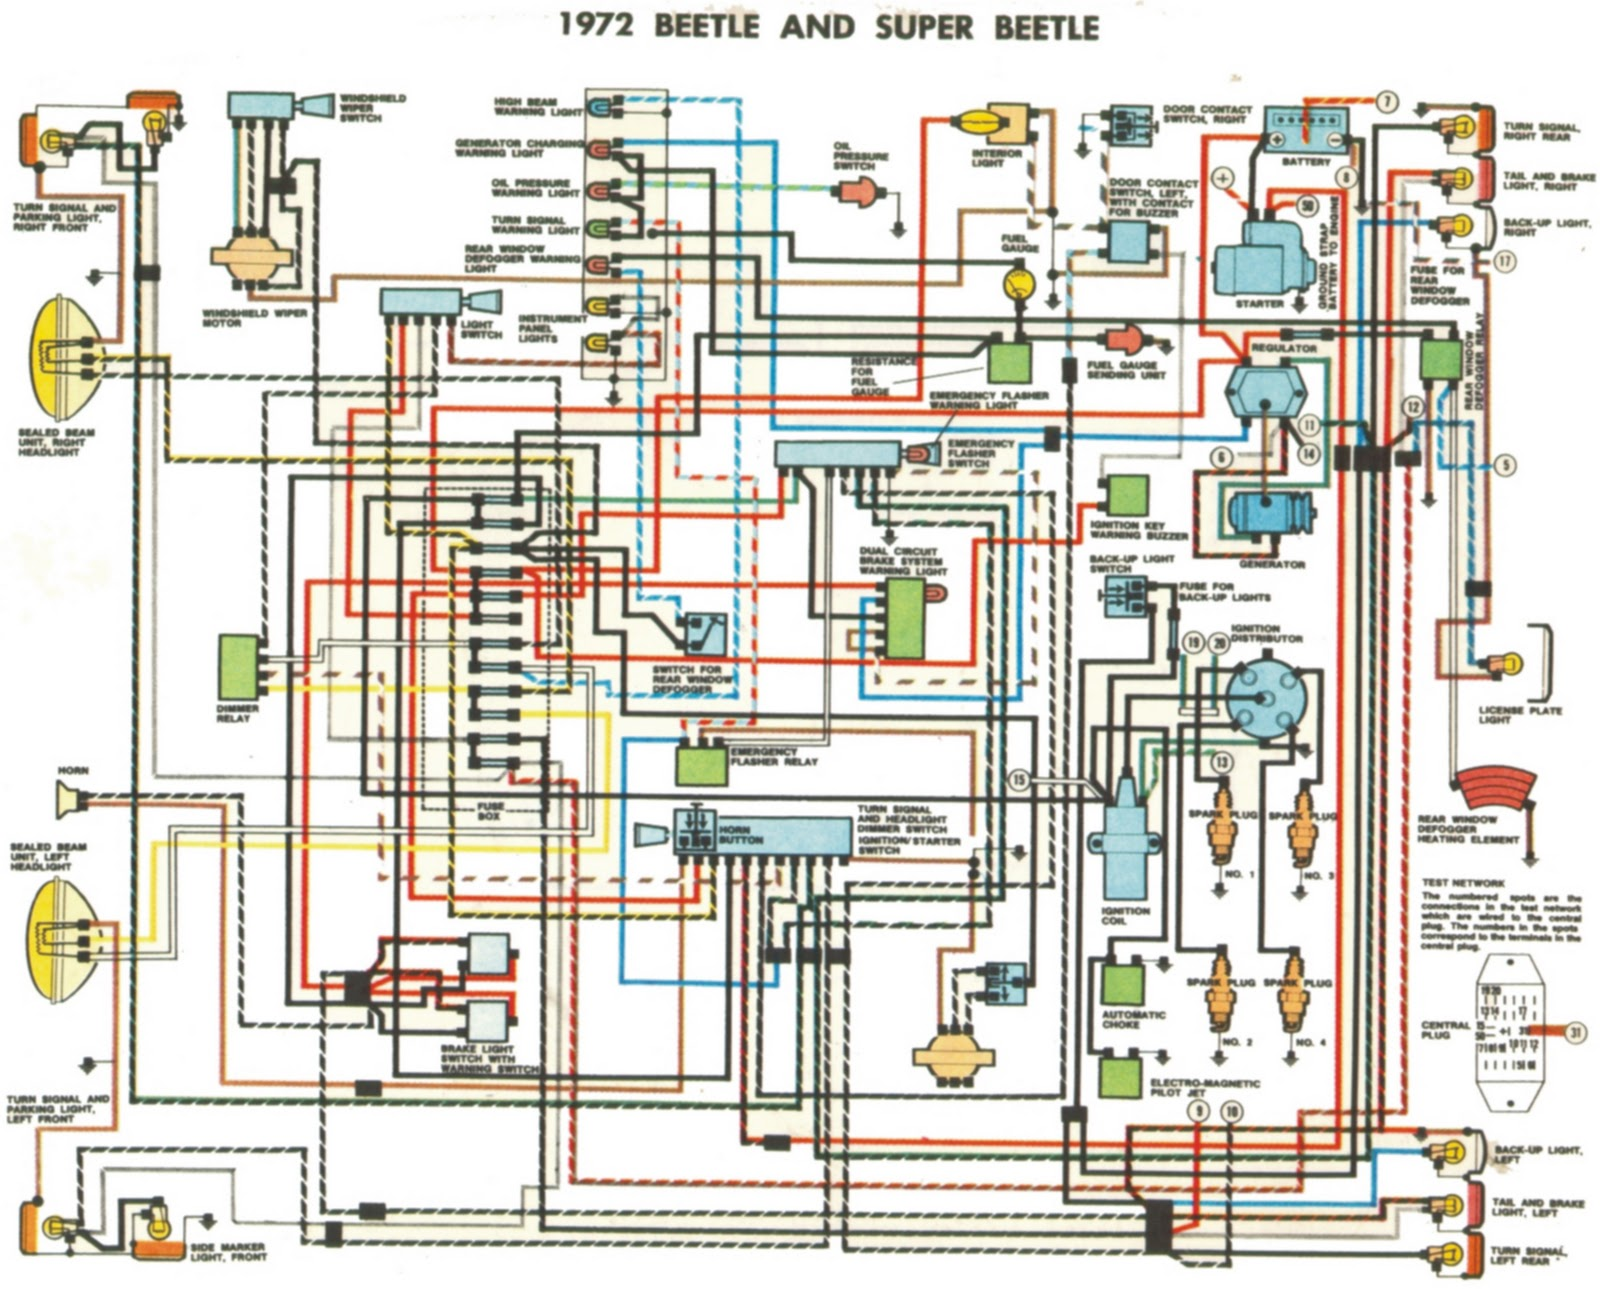 72 vw engine diagram wiring diagrams schema rh 89 valdeig media de vw 1600 single port vw 36 horse engine diagram [ 1600 x 1289 Pixel ]